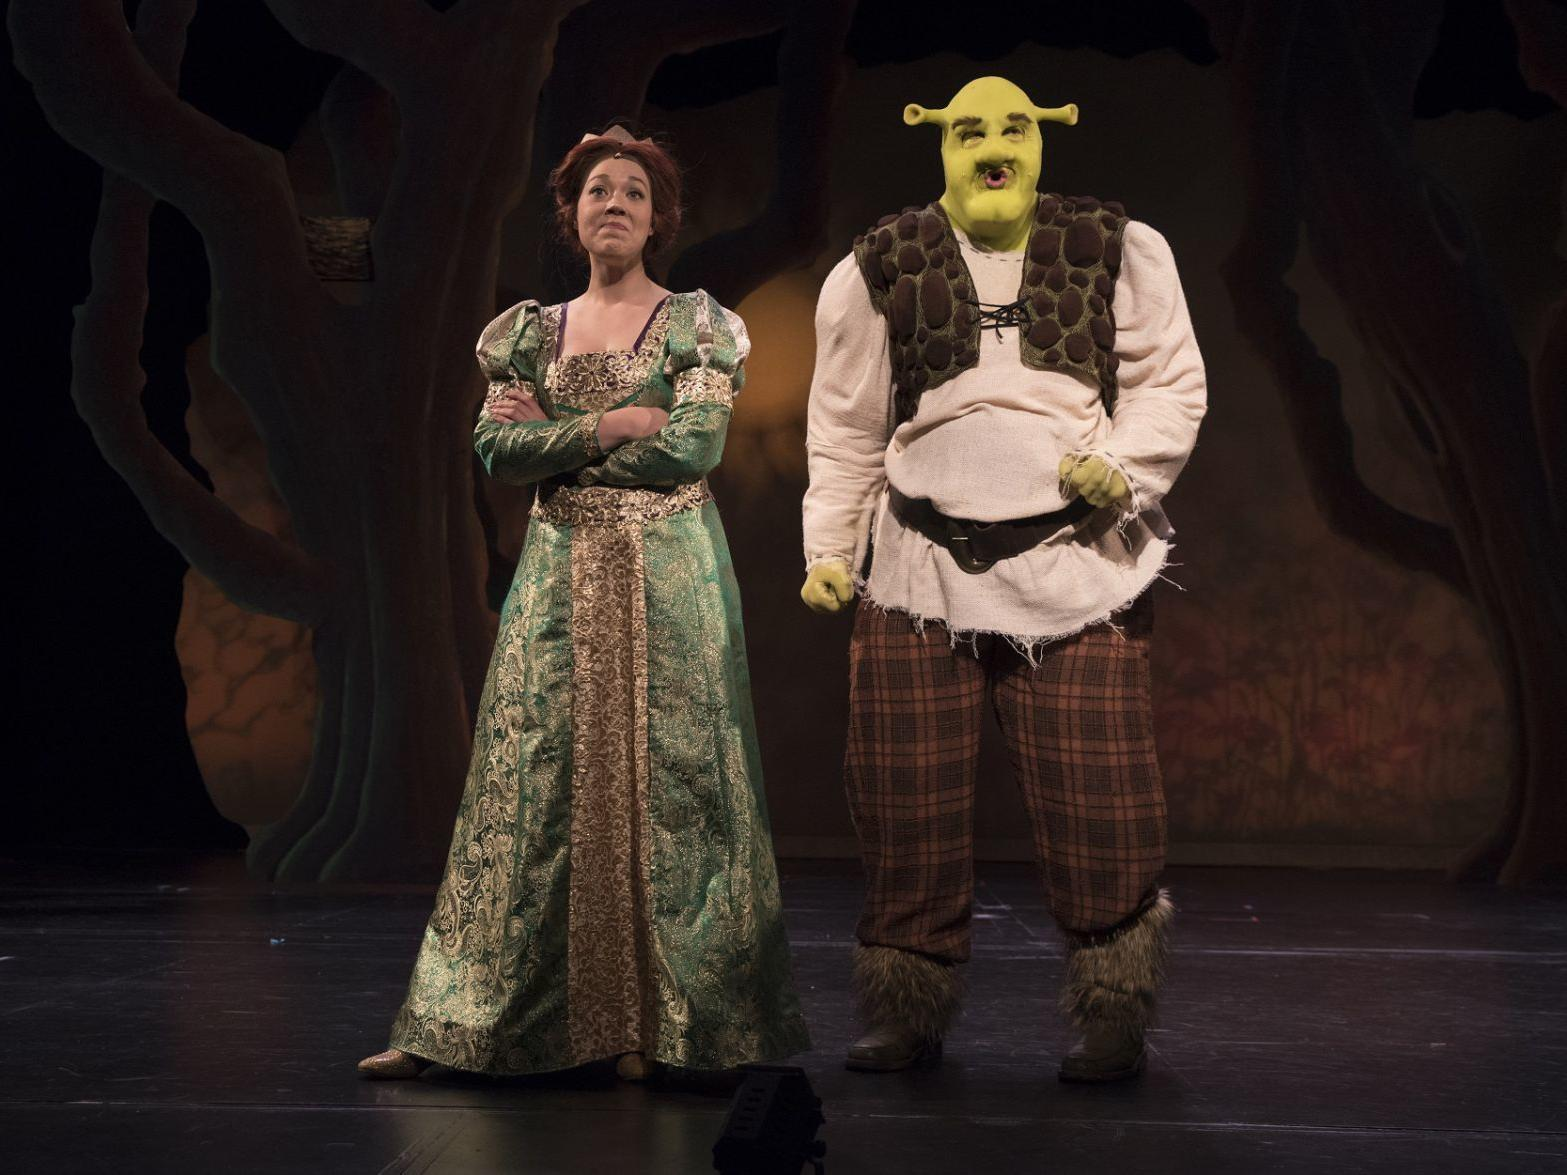 Review: Omaha Playhouse's 'Shrek the Musical' is first-rate, fast-paced fun